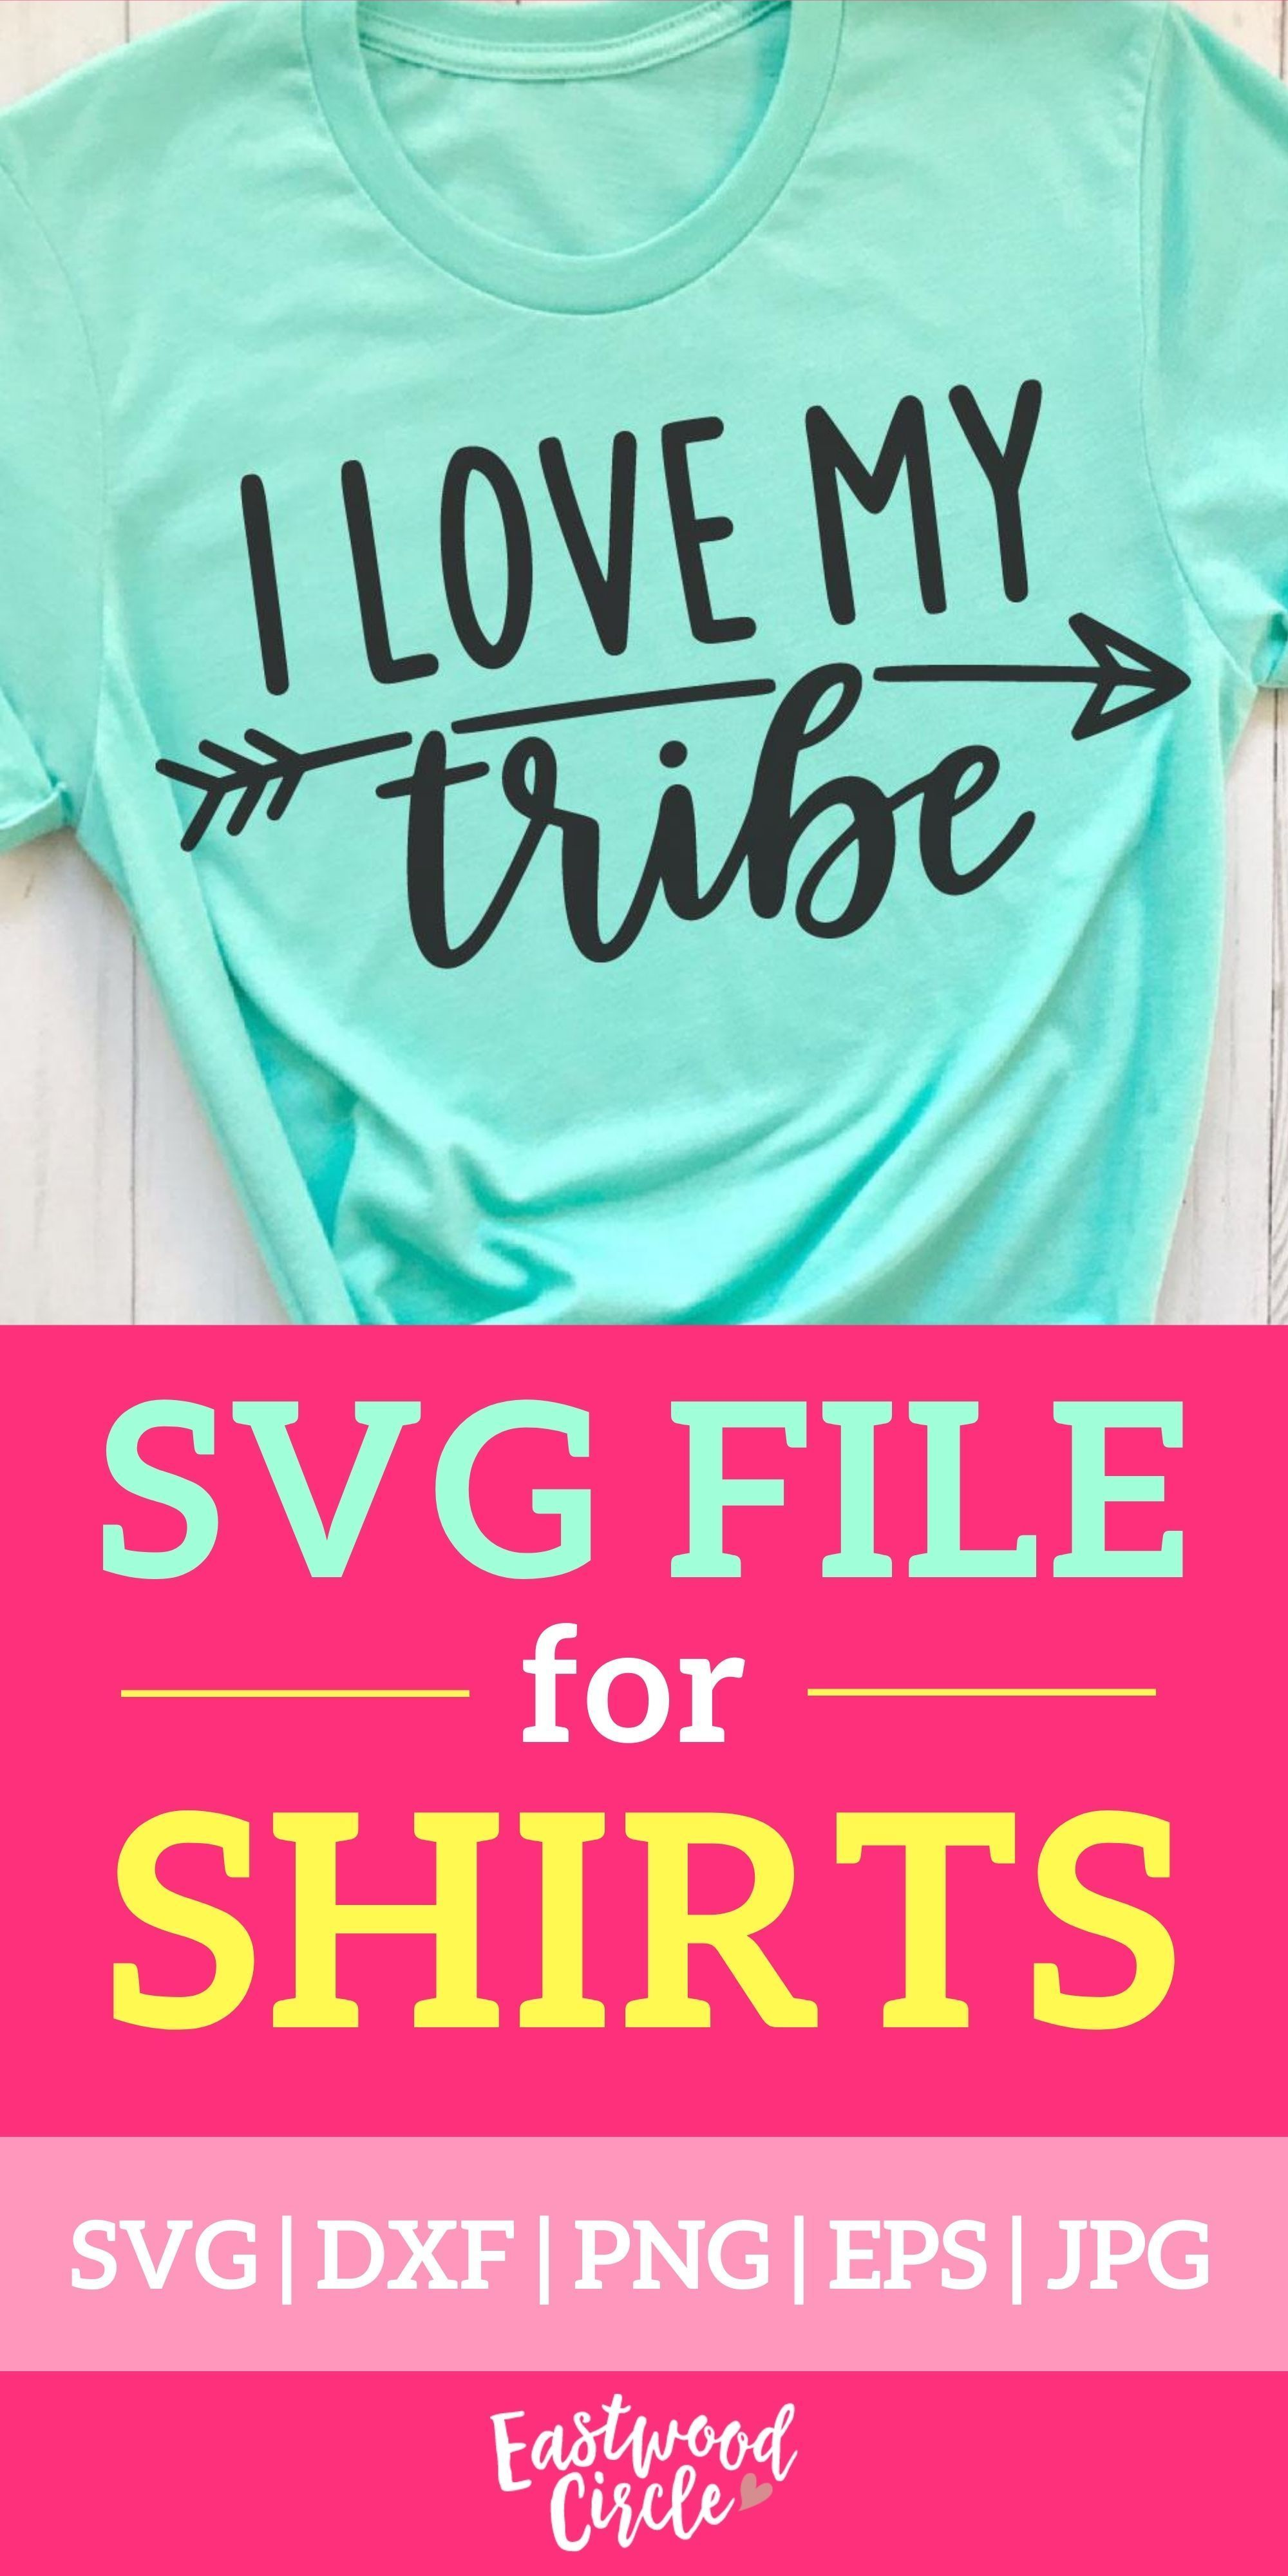 1910+ I Love My Tribe Svg Download Free